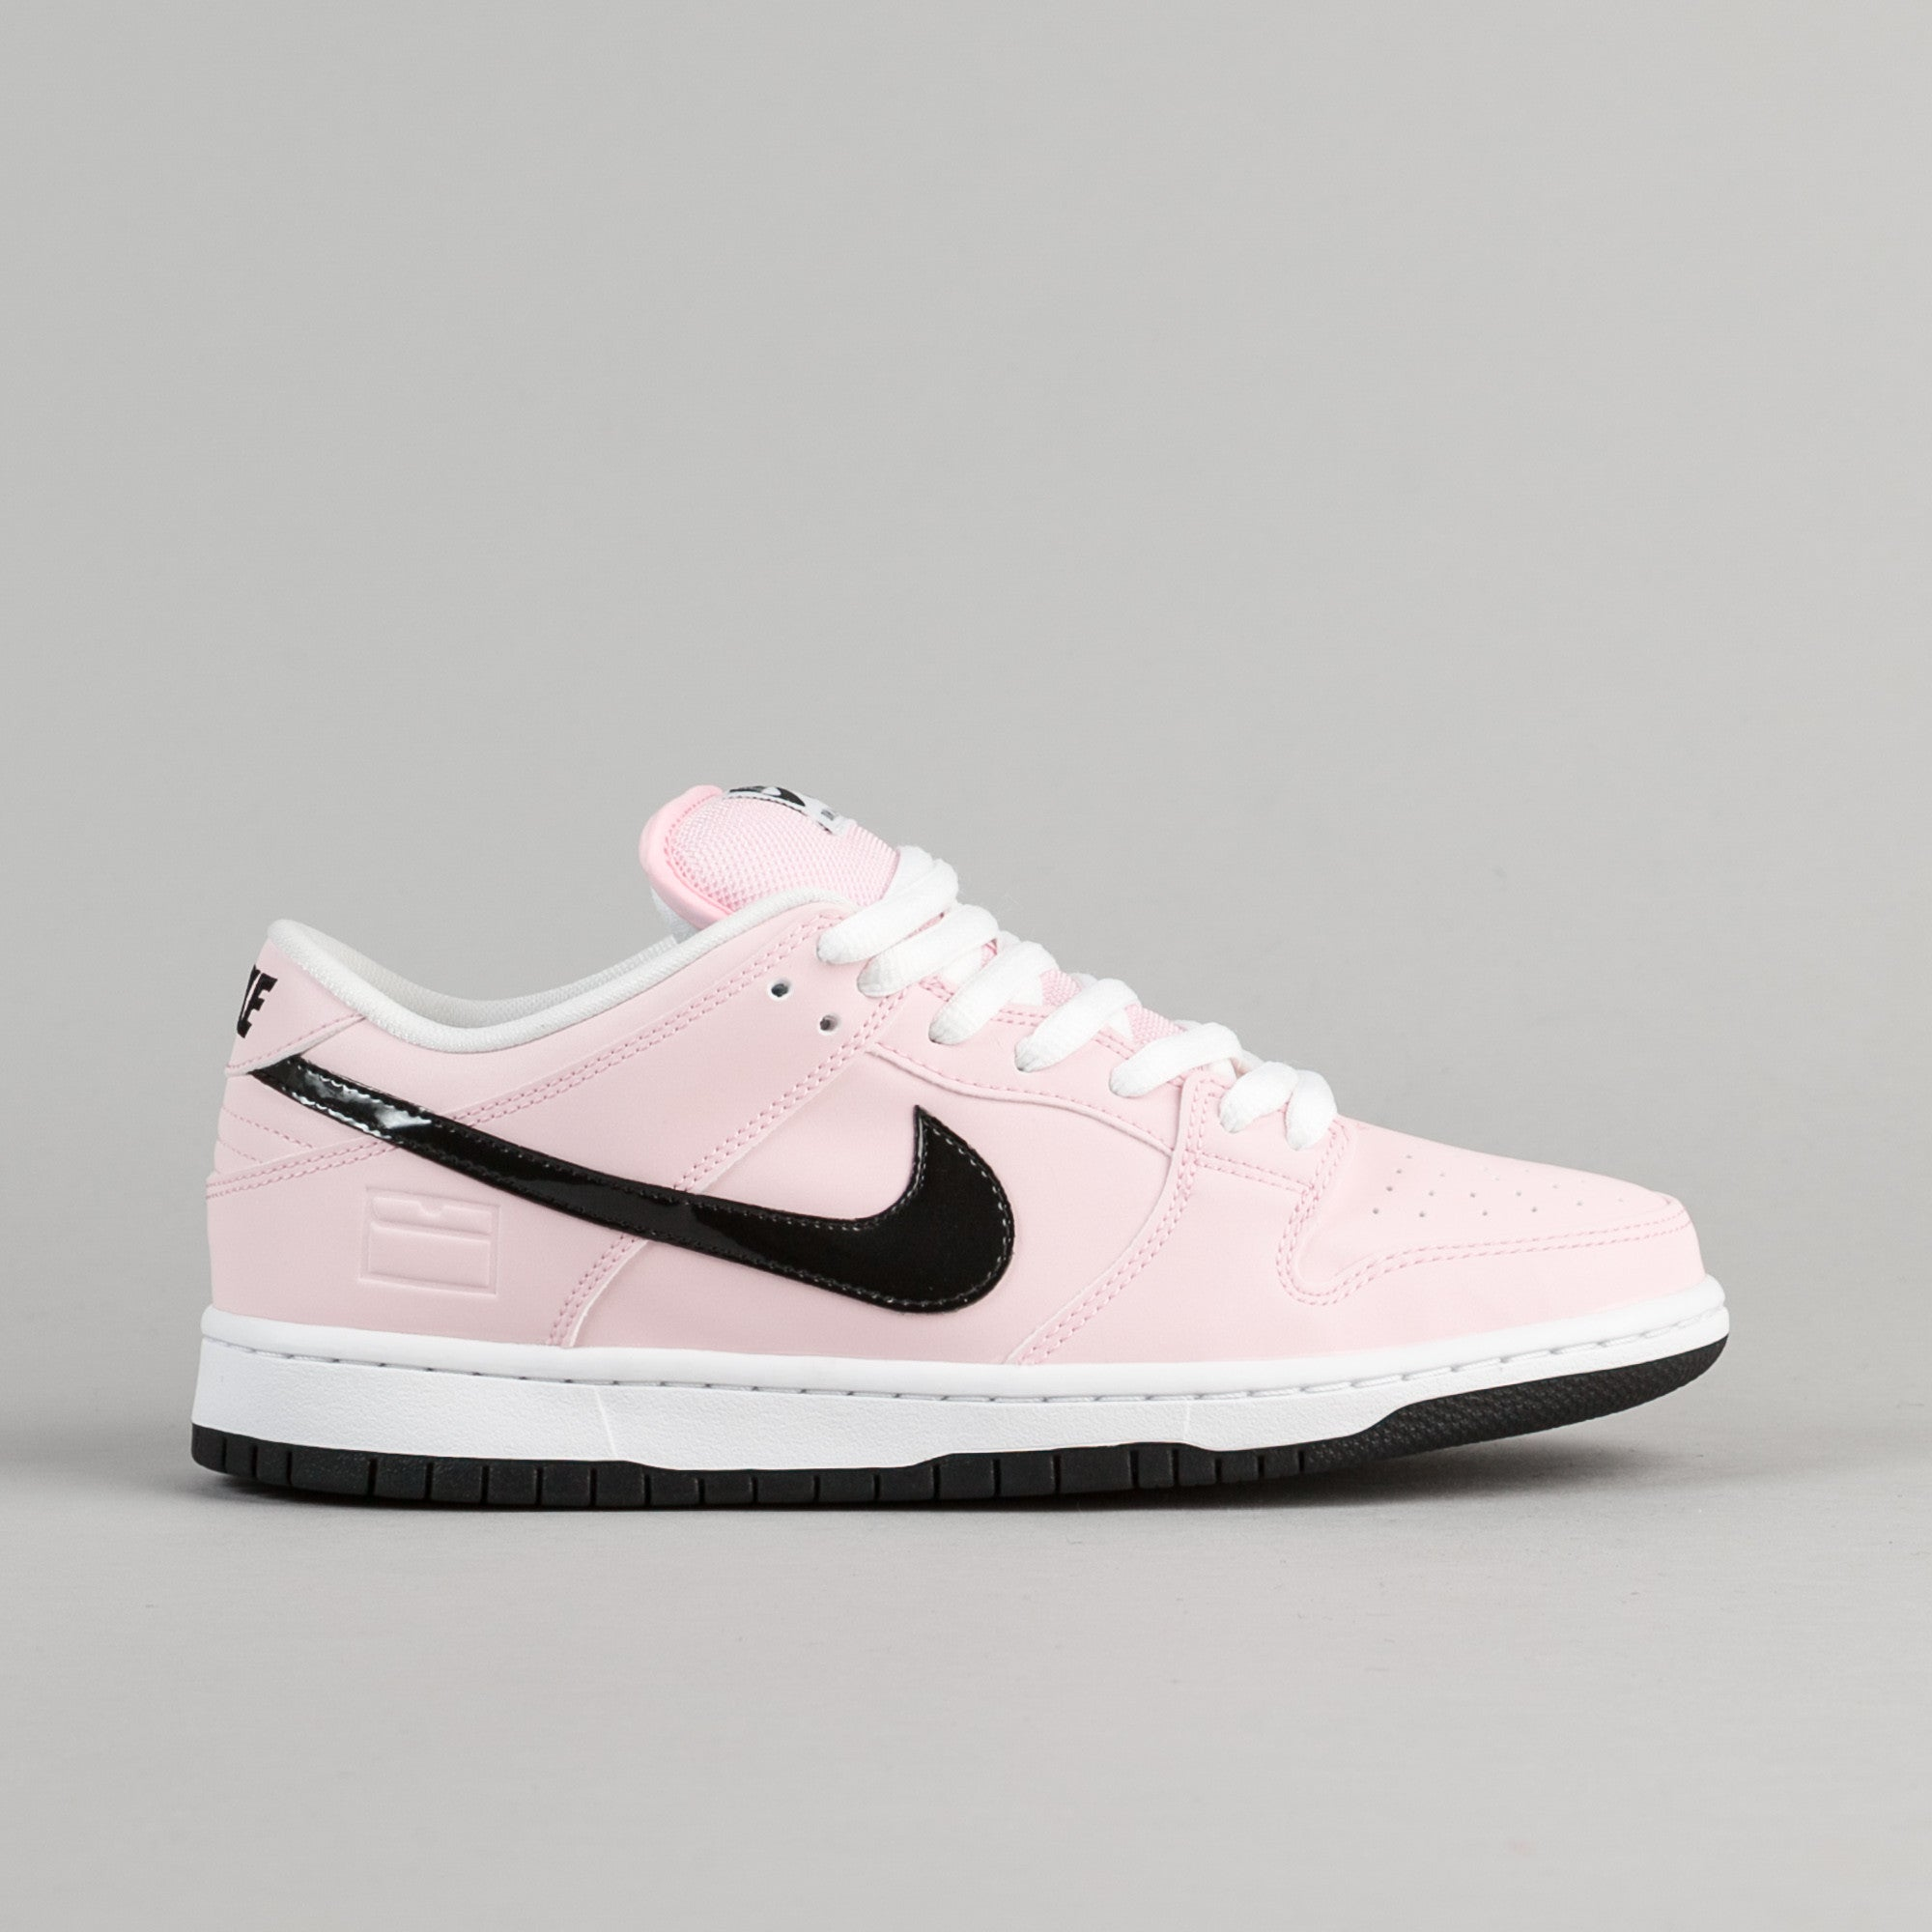 the best attitude 1b8fe a2f05 Nike SB Dunk Low Elite Shoes - Prism Pink  Black - White